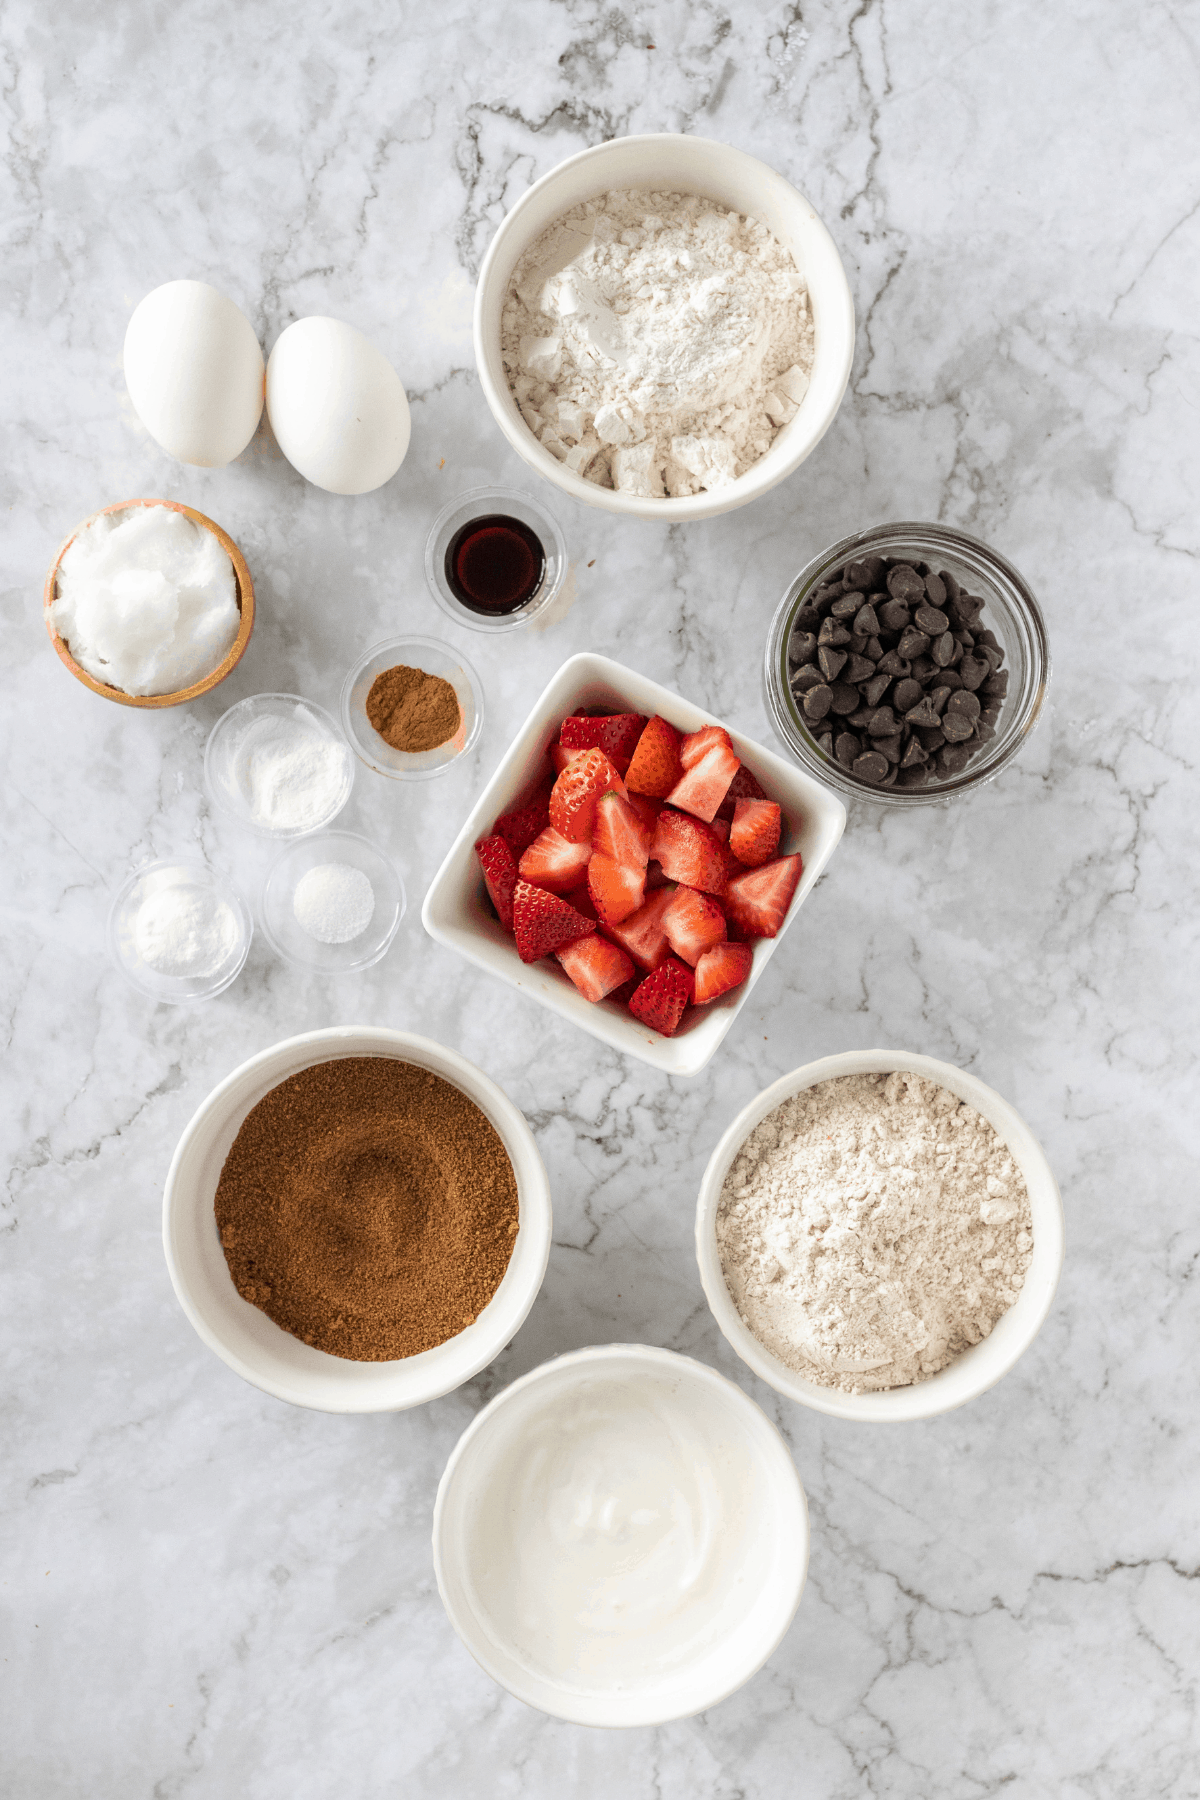 ingredients to make strawberry muffins with chocolate chips